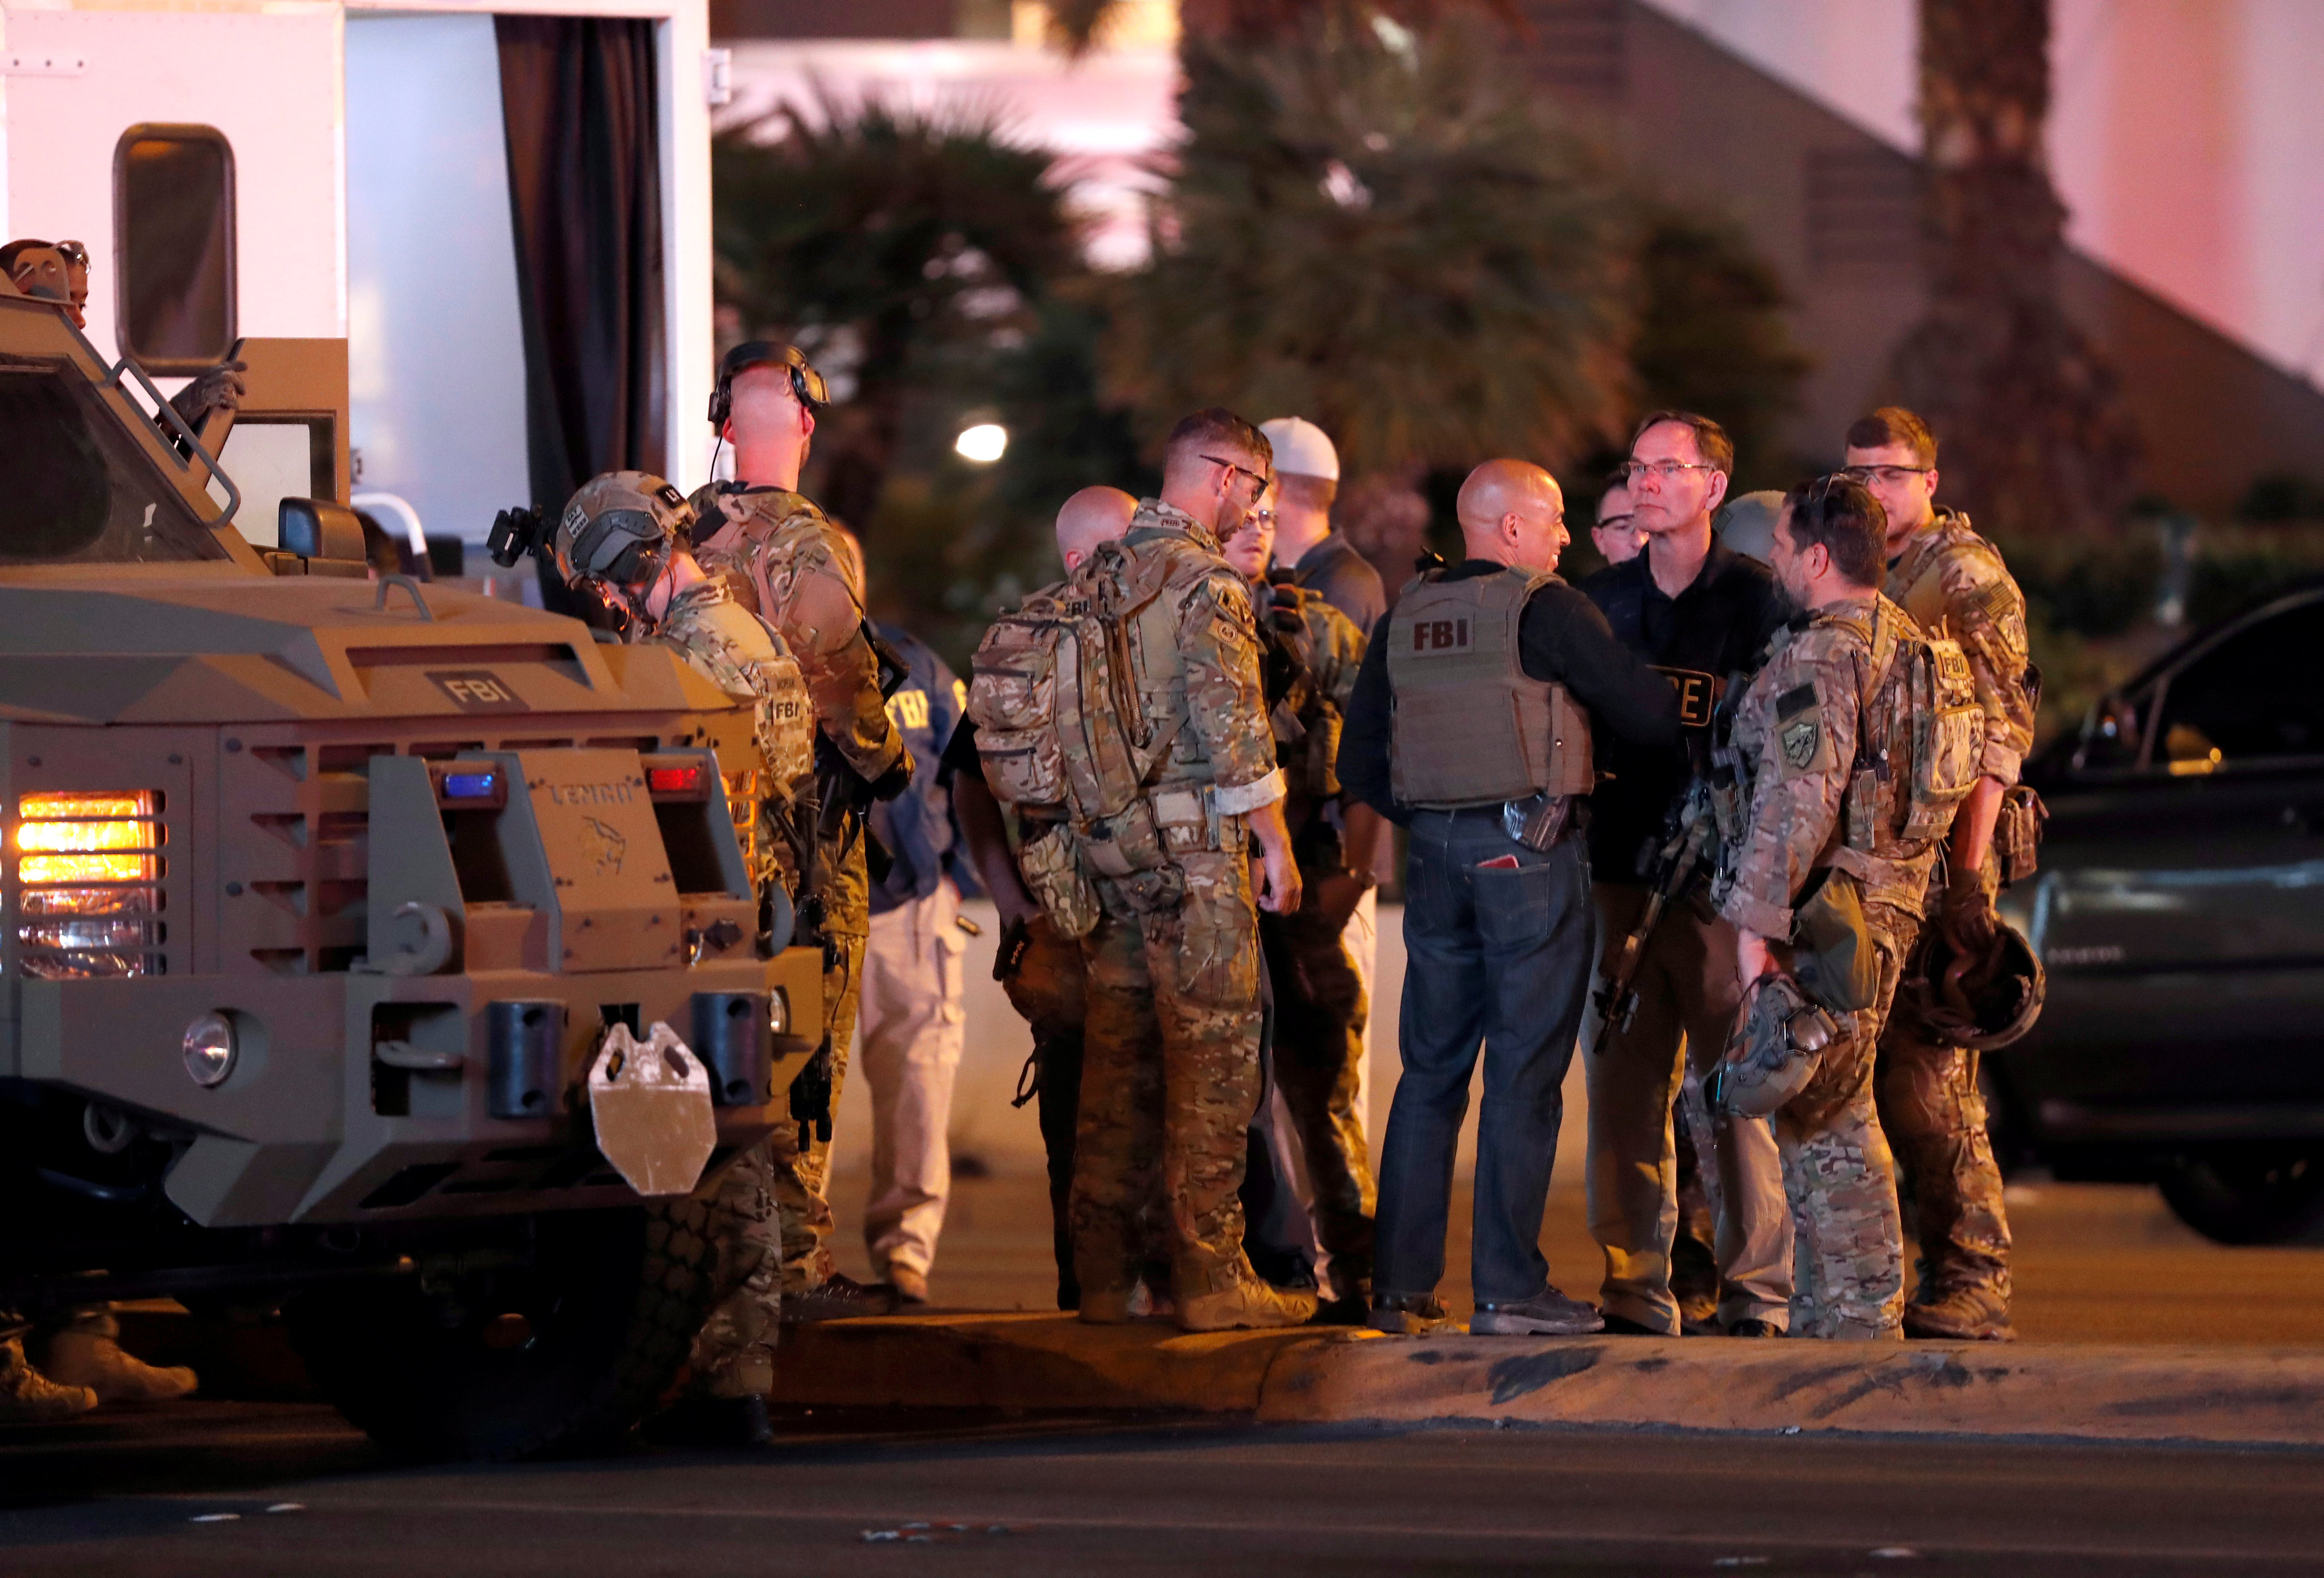 Las Vegas police look for motive in deadliest mass shooting in modern U.S. history